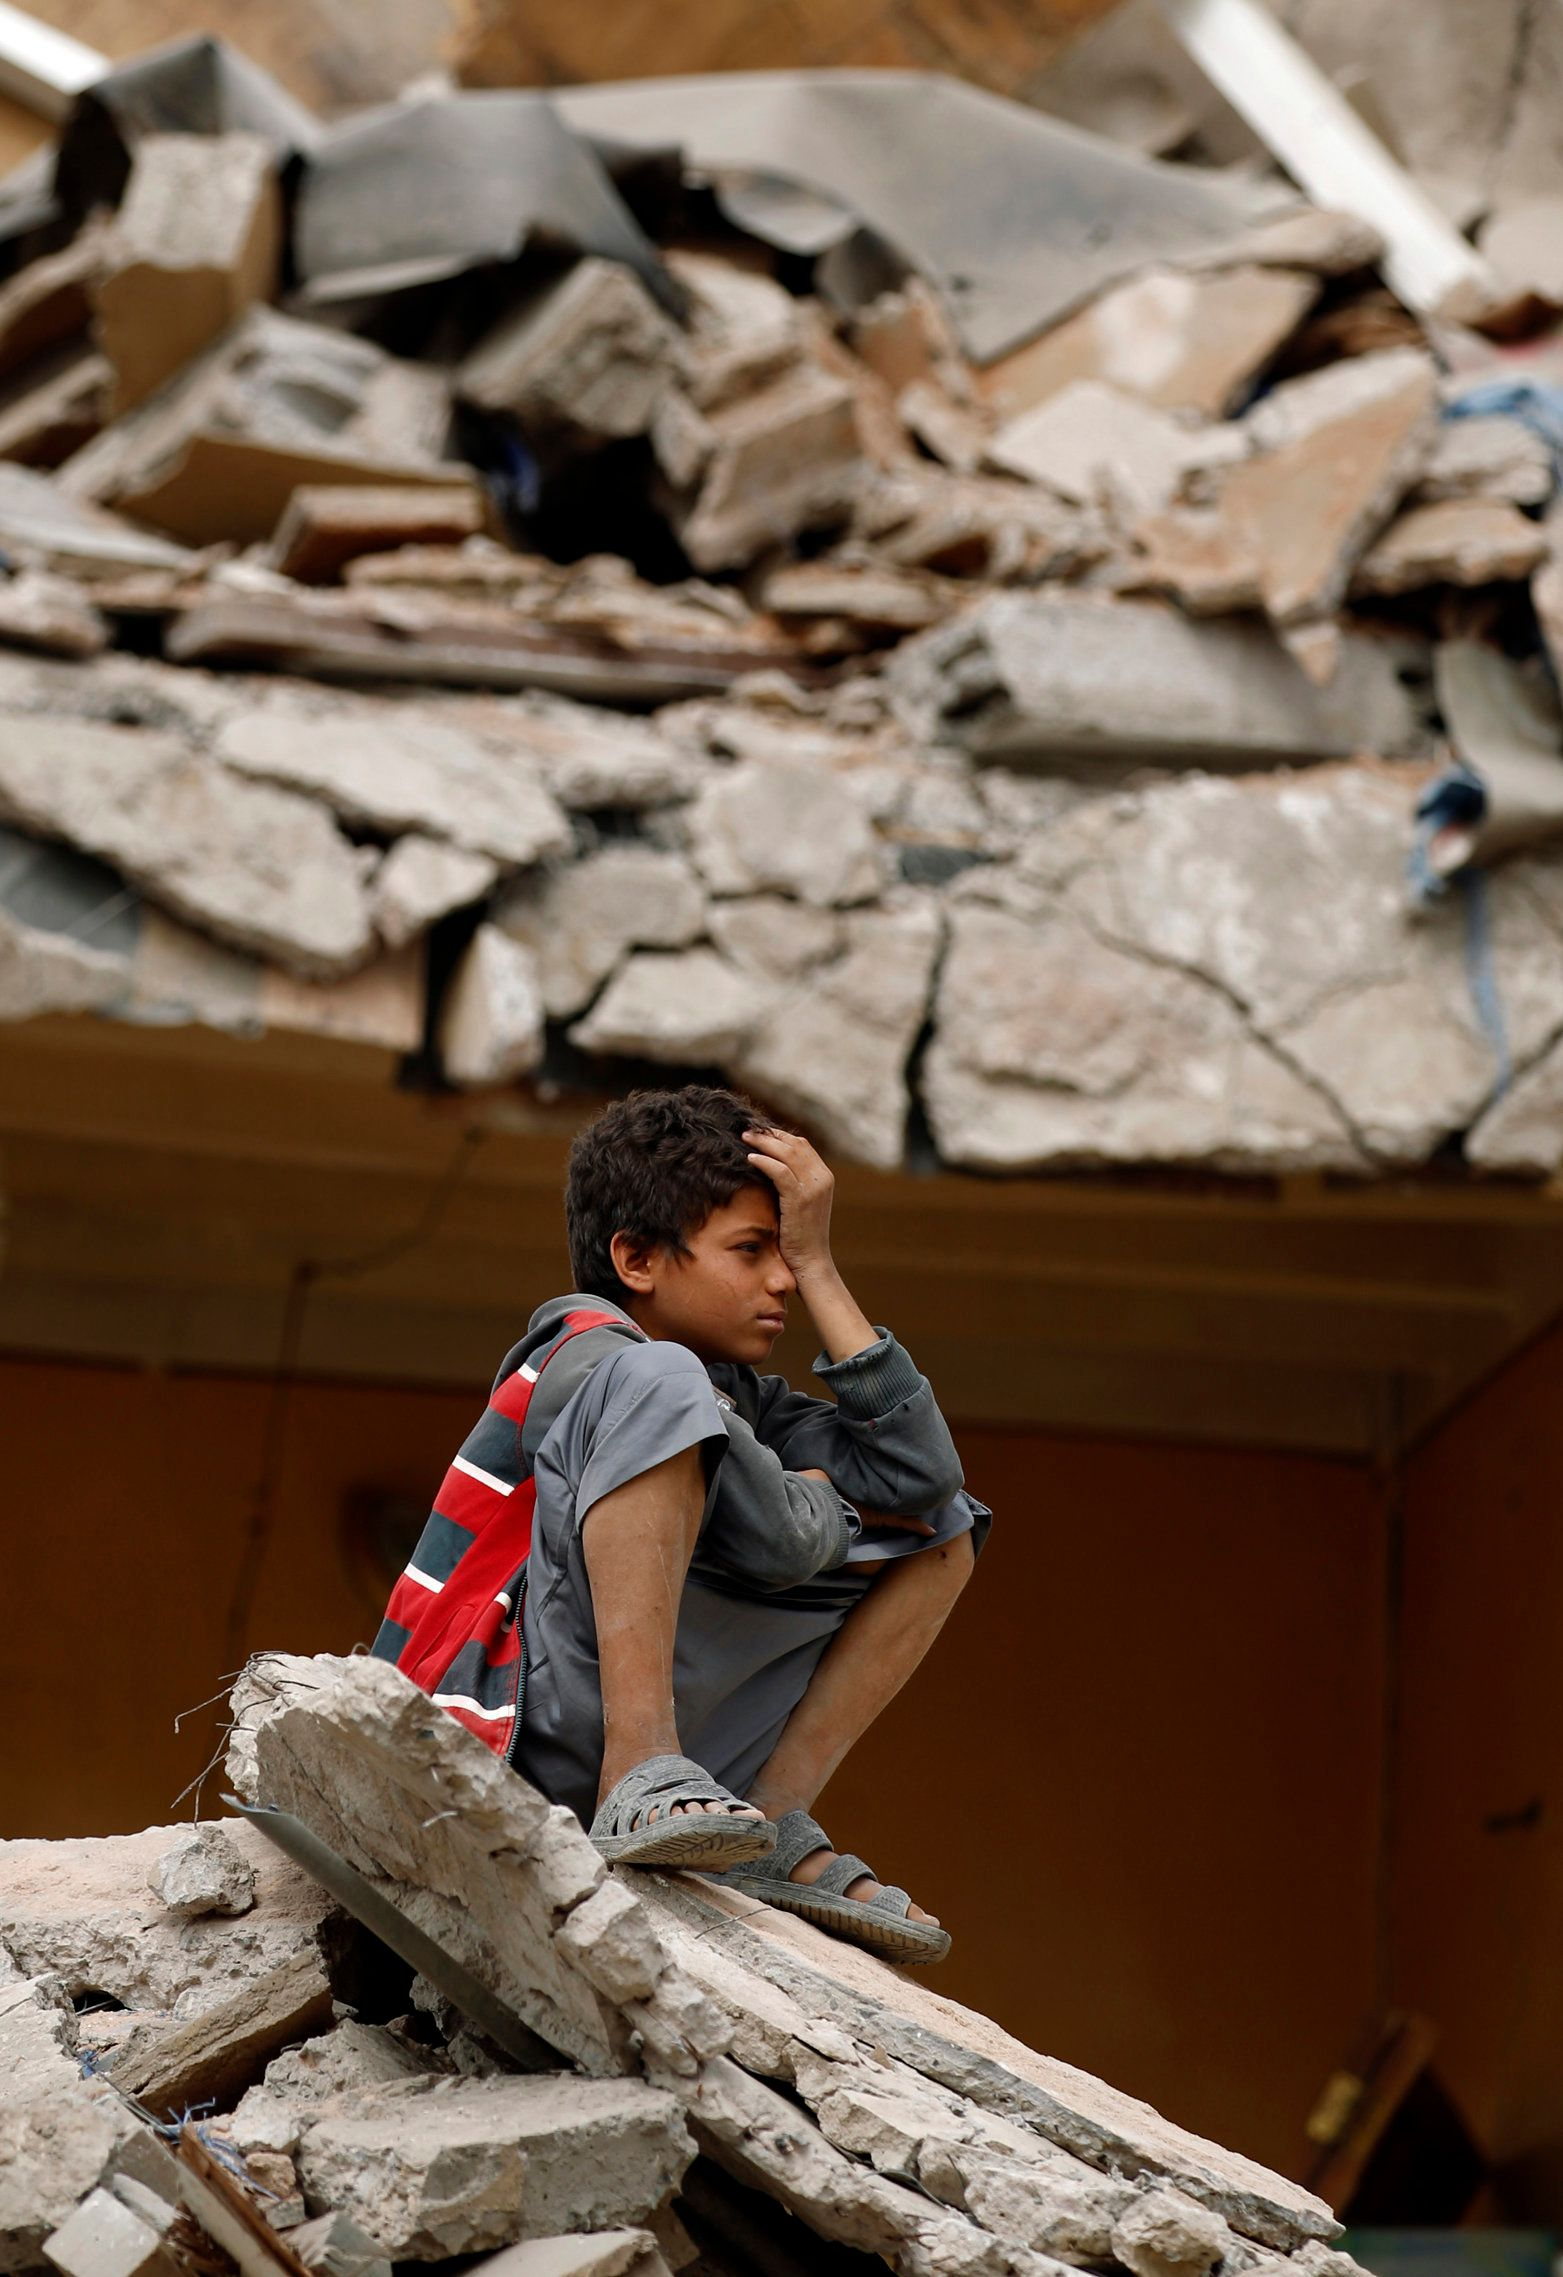 A Yemeni boy reacts as he sits on the debris of a house hit in an air strike in the residential southern Faj Attan district of the capital, Sanaa, on August 25, 2017. The attack destroyed two buildings in the southern district, leaving people buried under debris, witnesses and medics said. / AFP PHOTO / MOHAMMED HUWAIS        (Photo credit should read MOHAMMED HUWAIS/AFP/Getty Images)